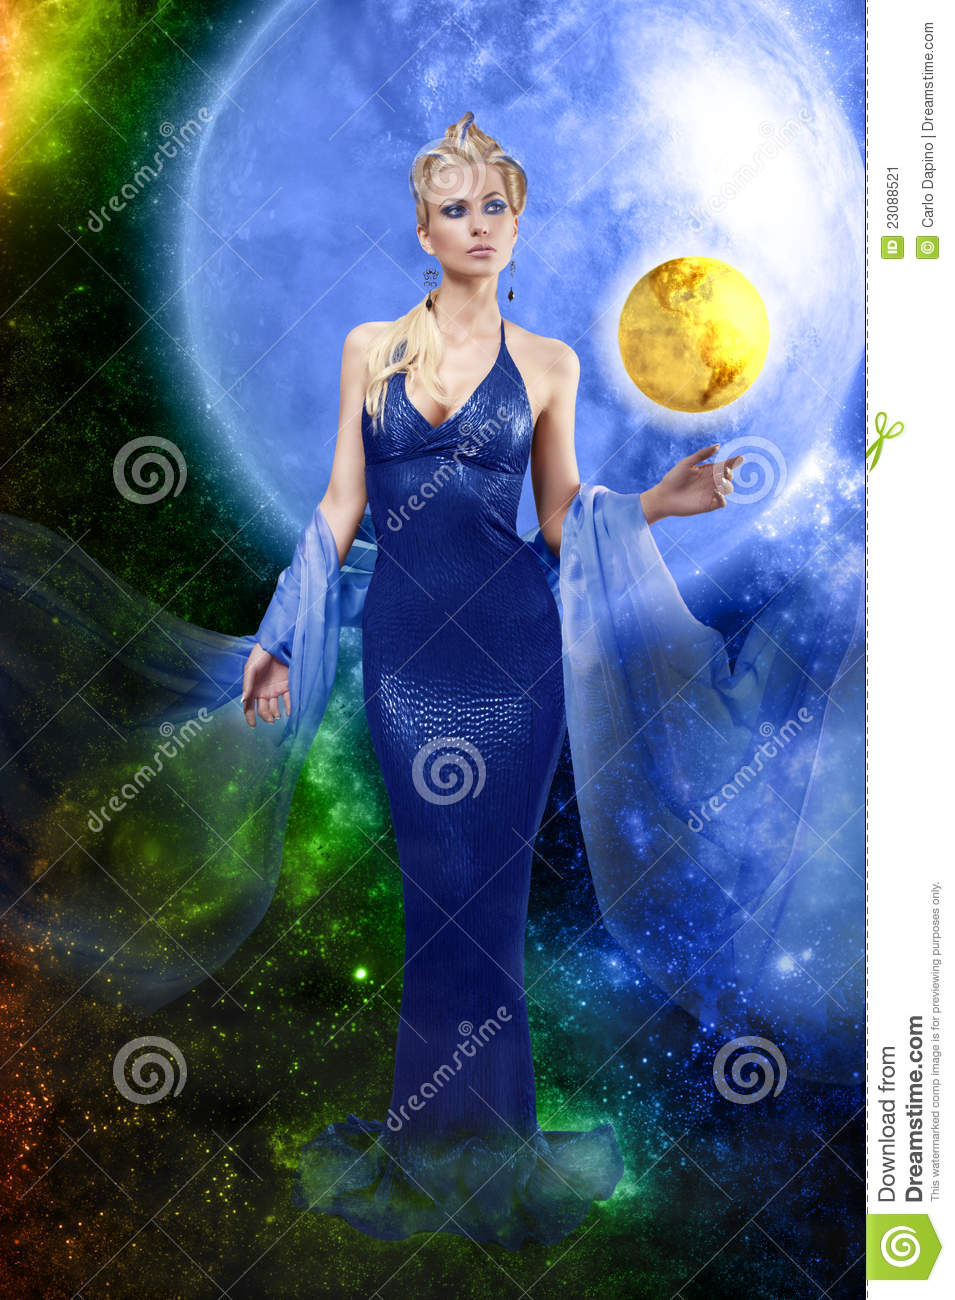 E.T. lady with golden planet